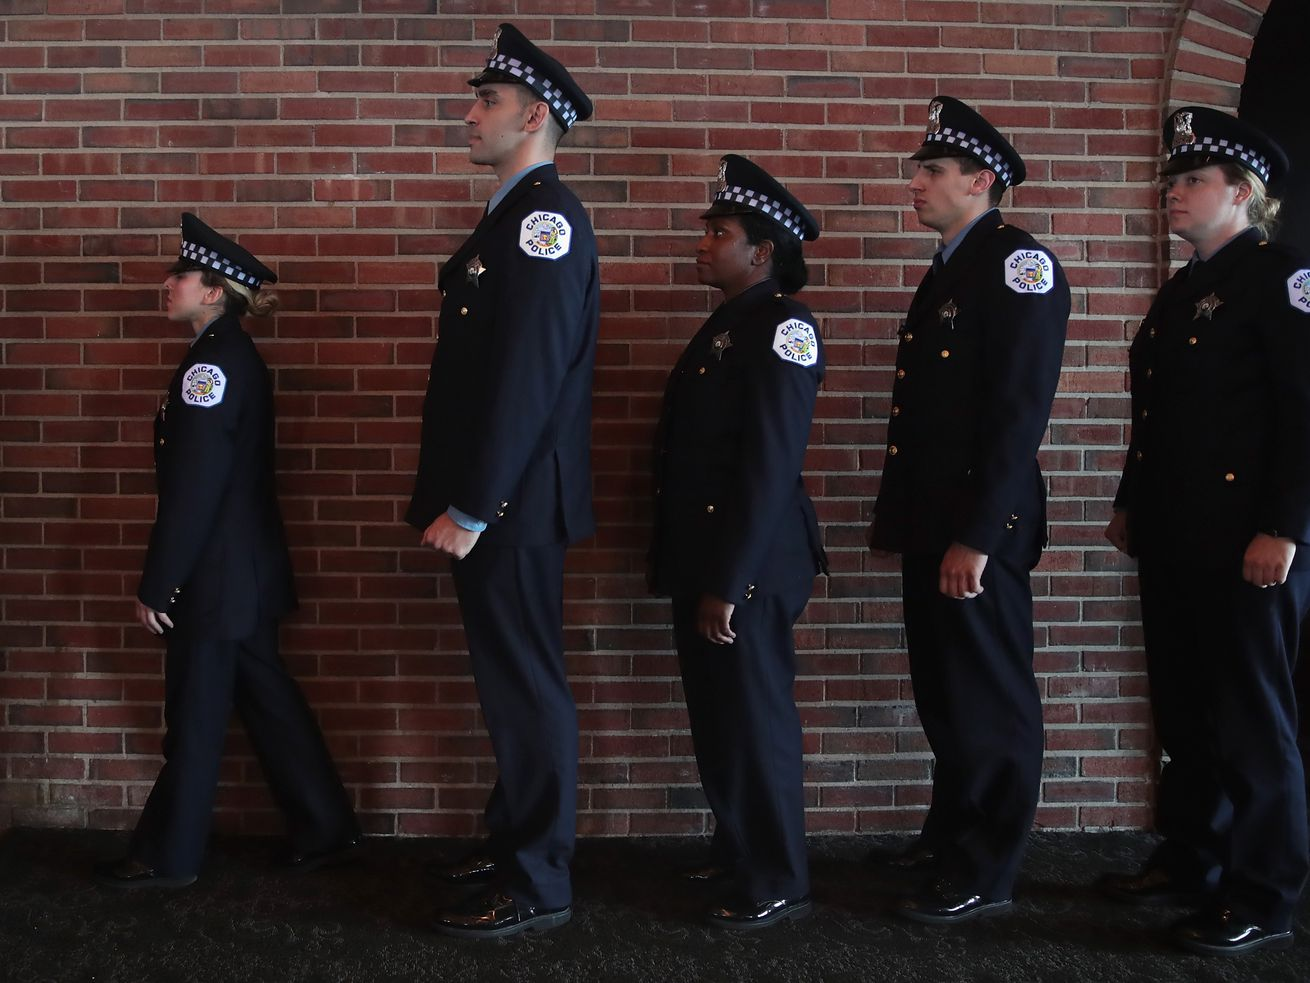 The Chicago City Council will vote Wednesday on an ordinance that would create a civilian oversight panel to oversee the Police Department.